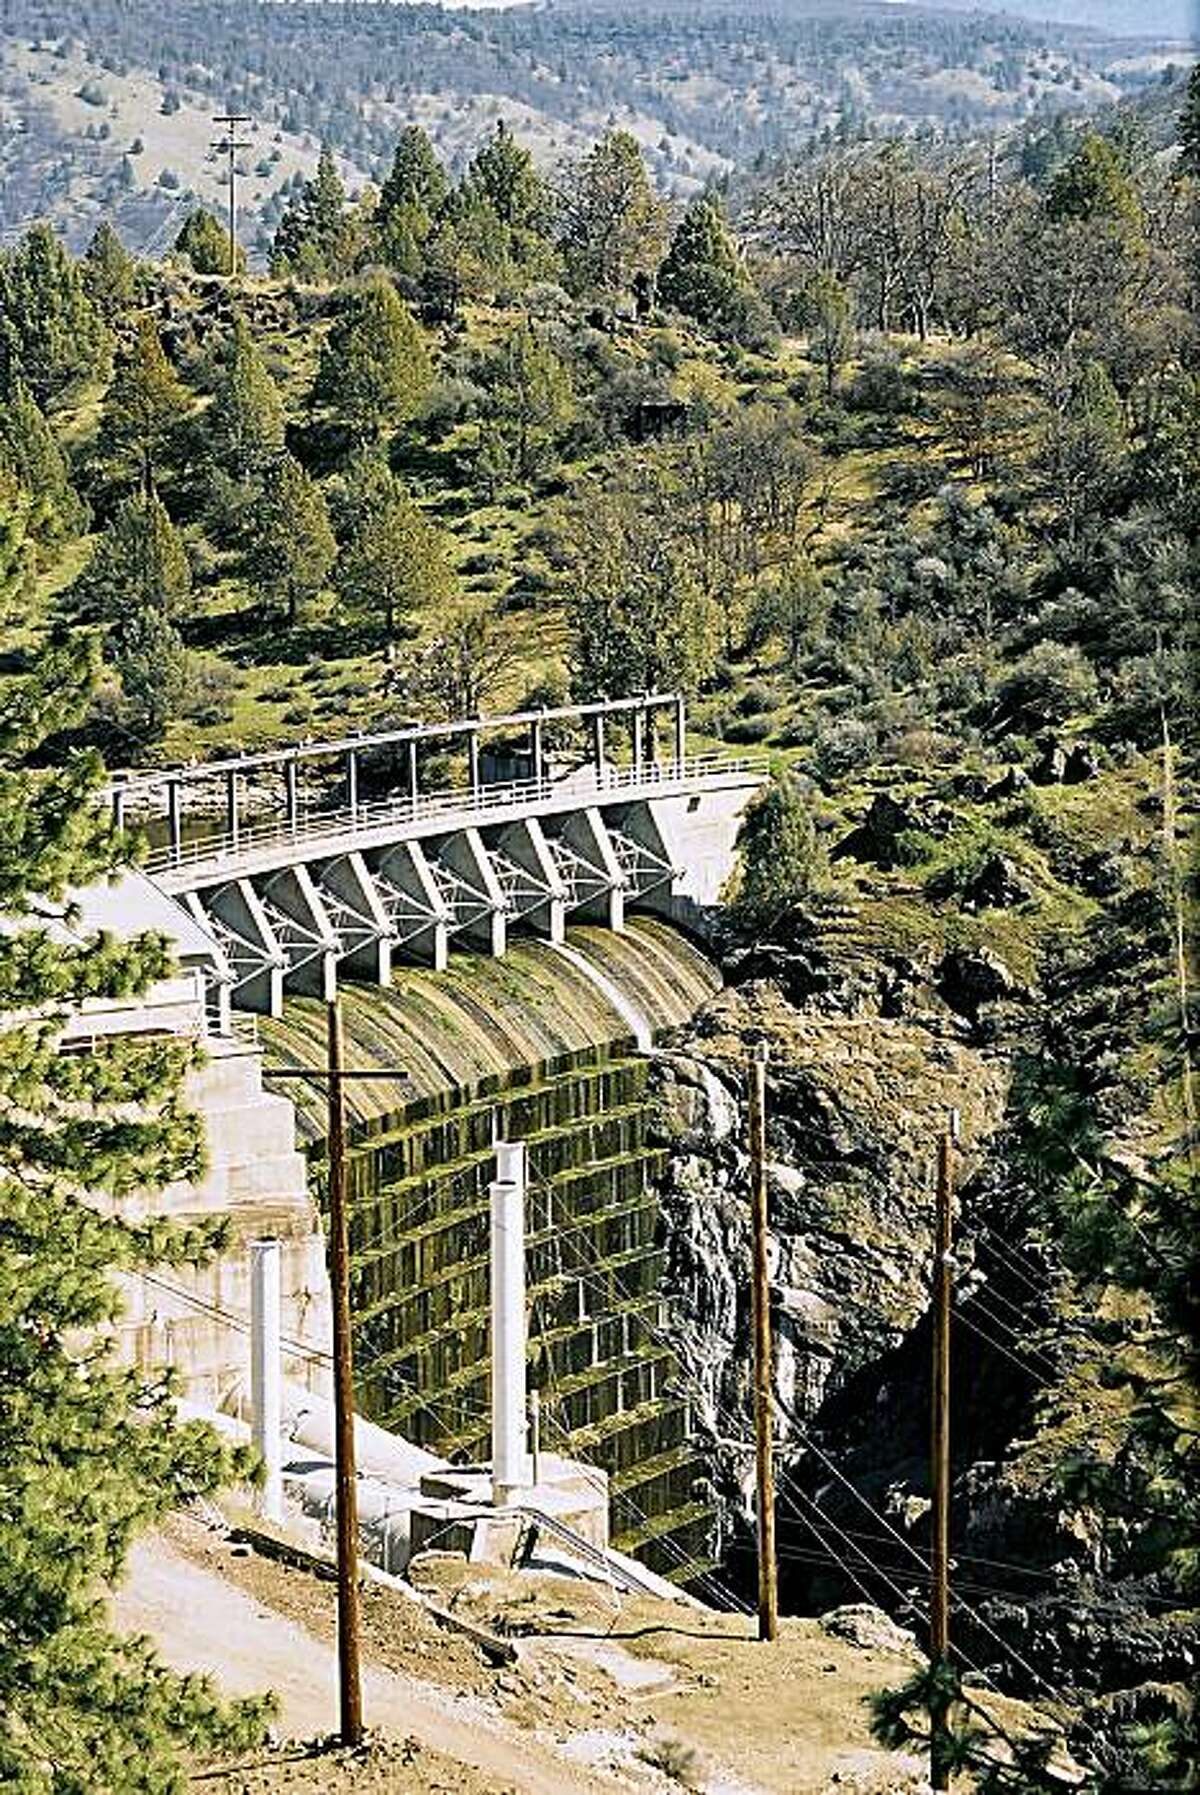 A file photo shows the Copco No. 1 dam operated by PacifCorp on the Klamath River outside Hornbrook, Calif., on March 16, 2004. Warren Buffett's MidAmerican Energy Holdings Co., which provides power for 5 million customers worldwide and is the largest utility in Iowa, is acquiring PacifiCorp, an electric utility with customers in six Western states, for $5.1 billion in cash, it was announced Tueday May 24, 2005. (AP Photo/Jeff Barnard)